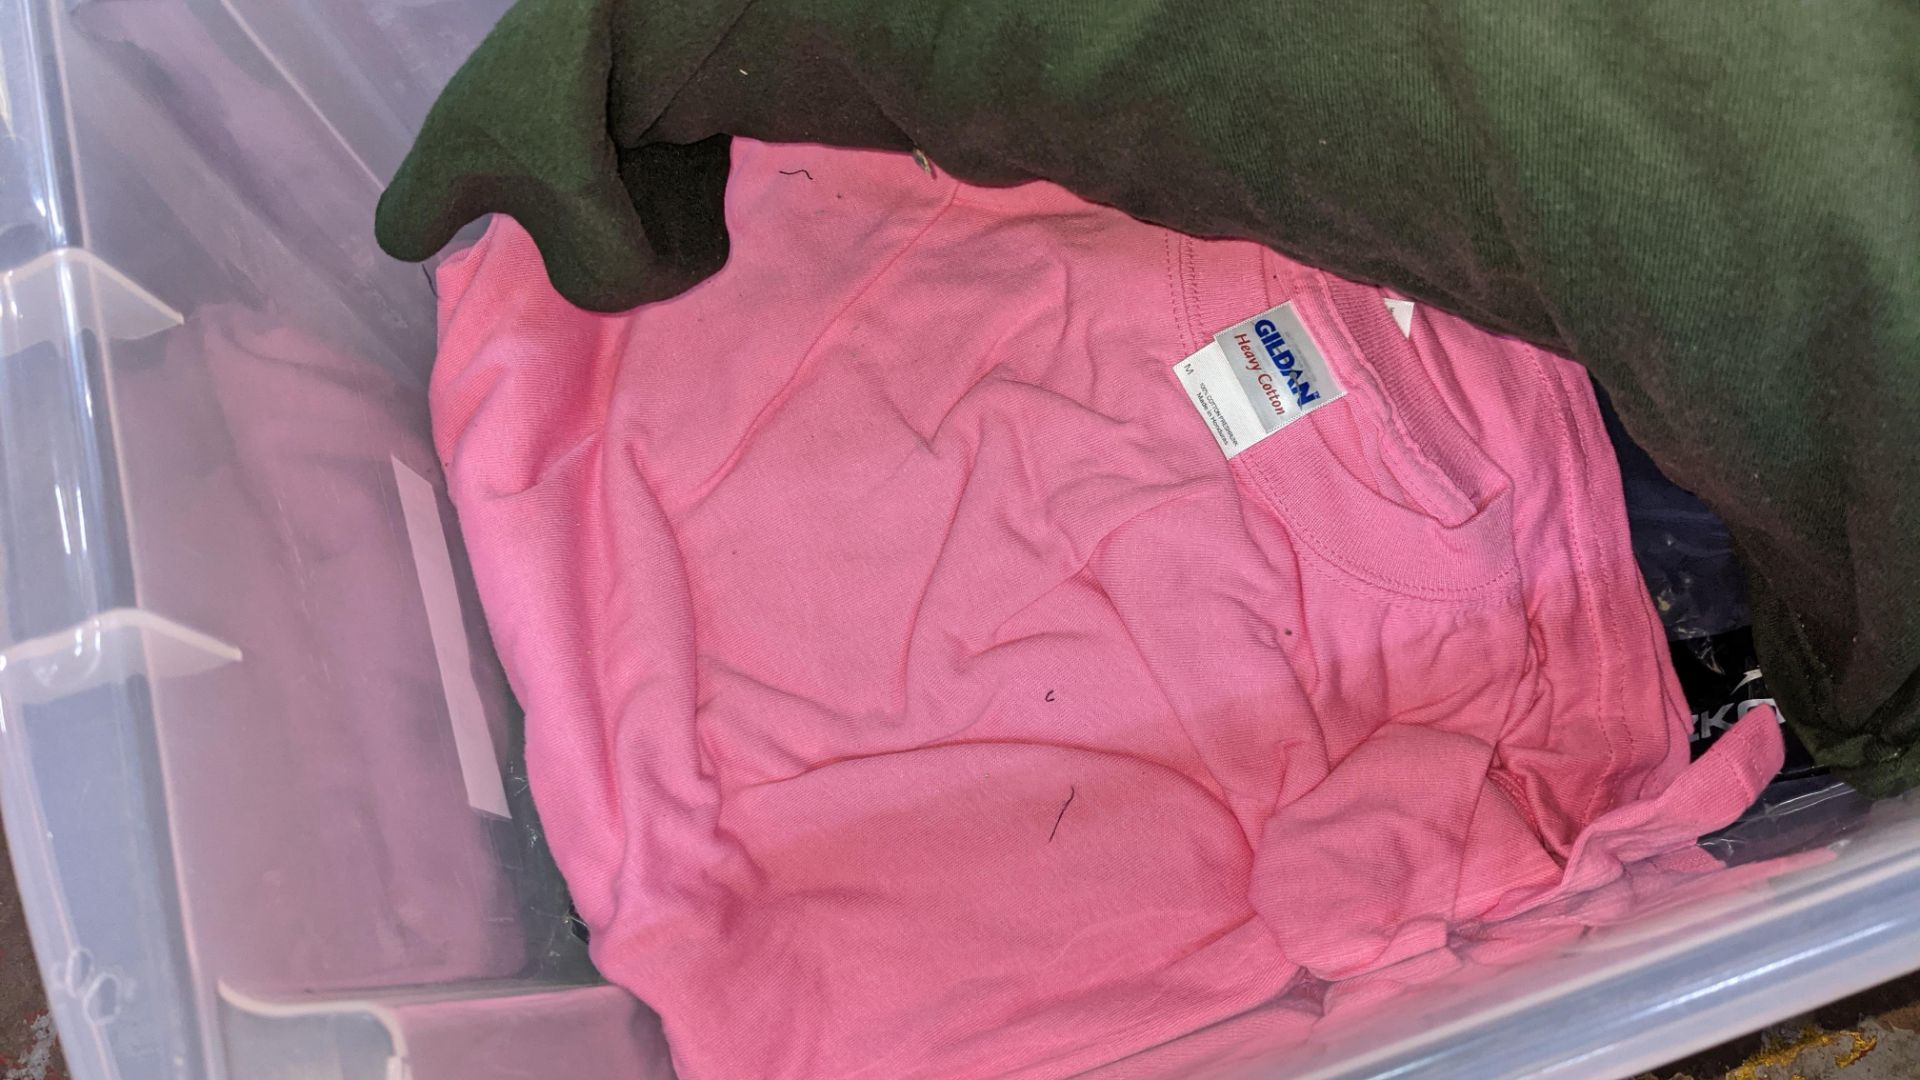 Approx 25 off Uneek assorted t-shirts - Image 6 of 7